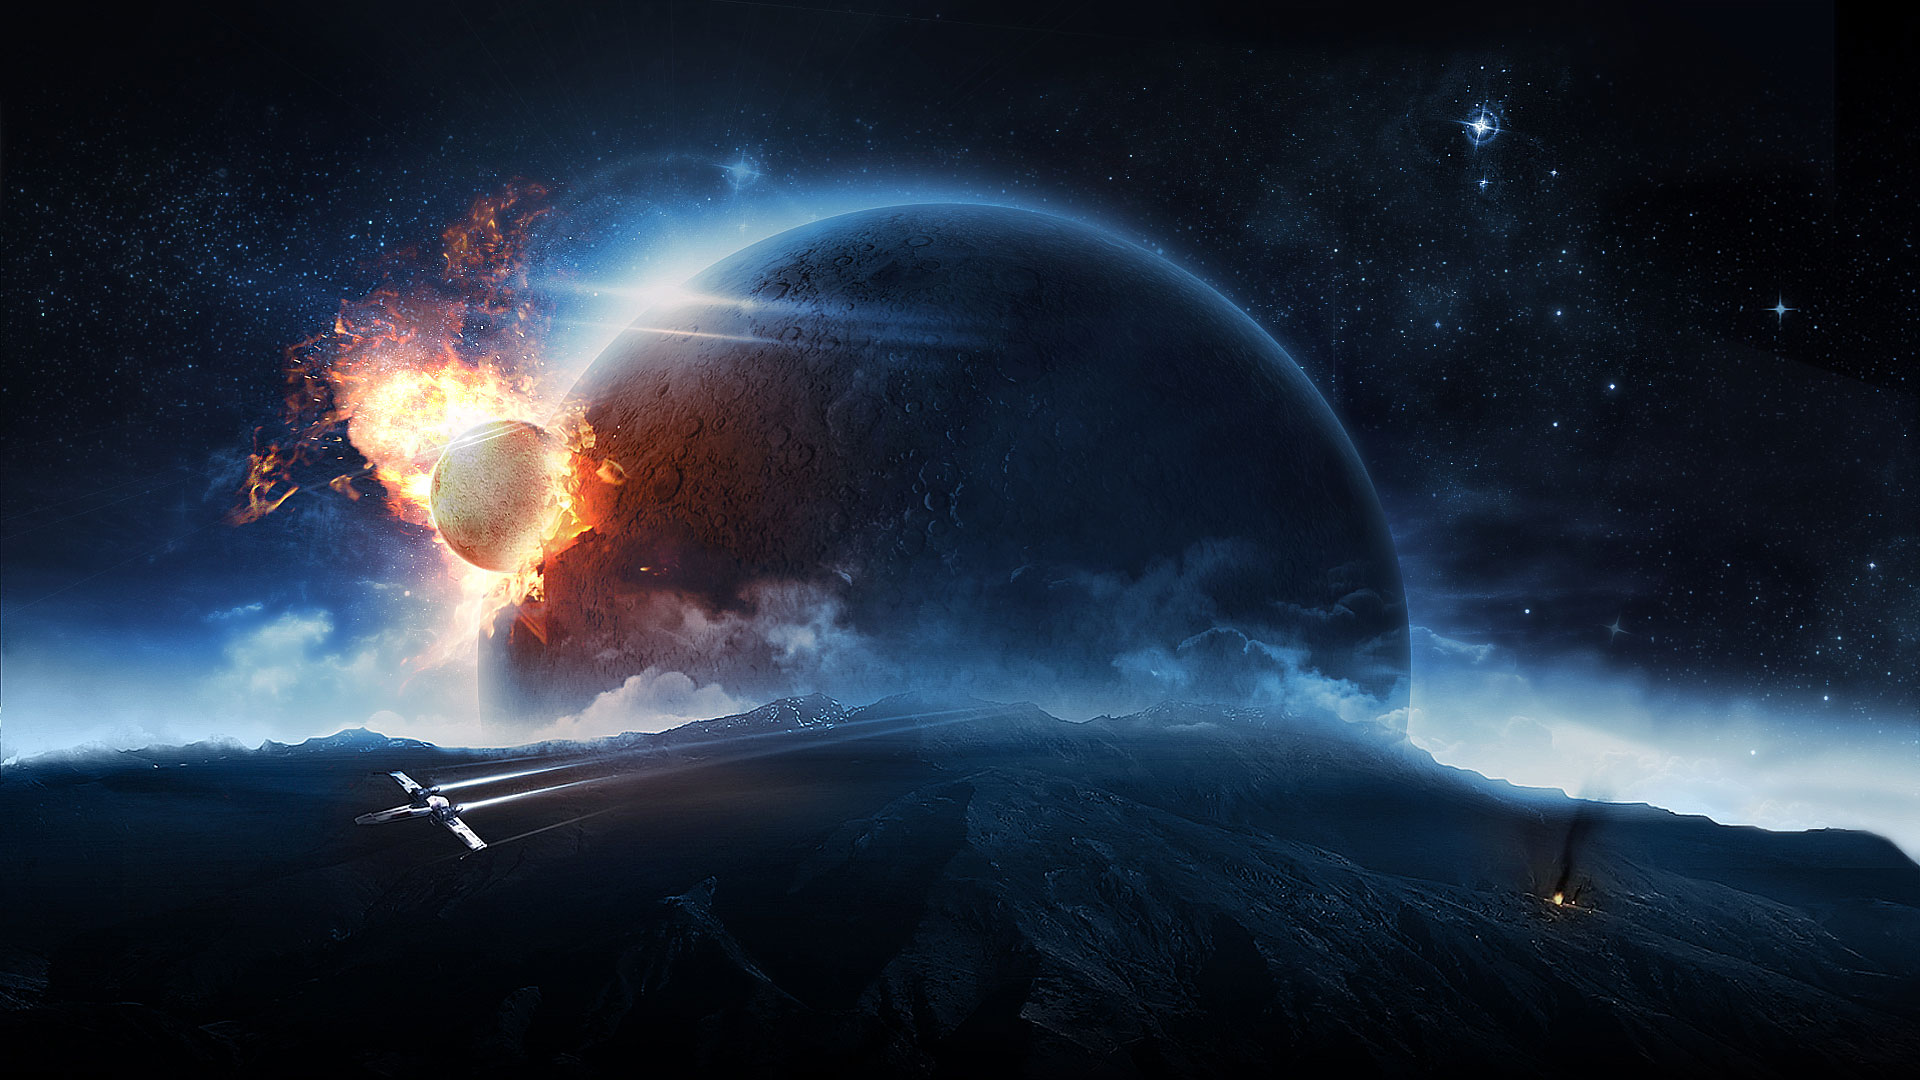 High Resolution Space Wallpapers Widescreen 7006734 1920x1080